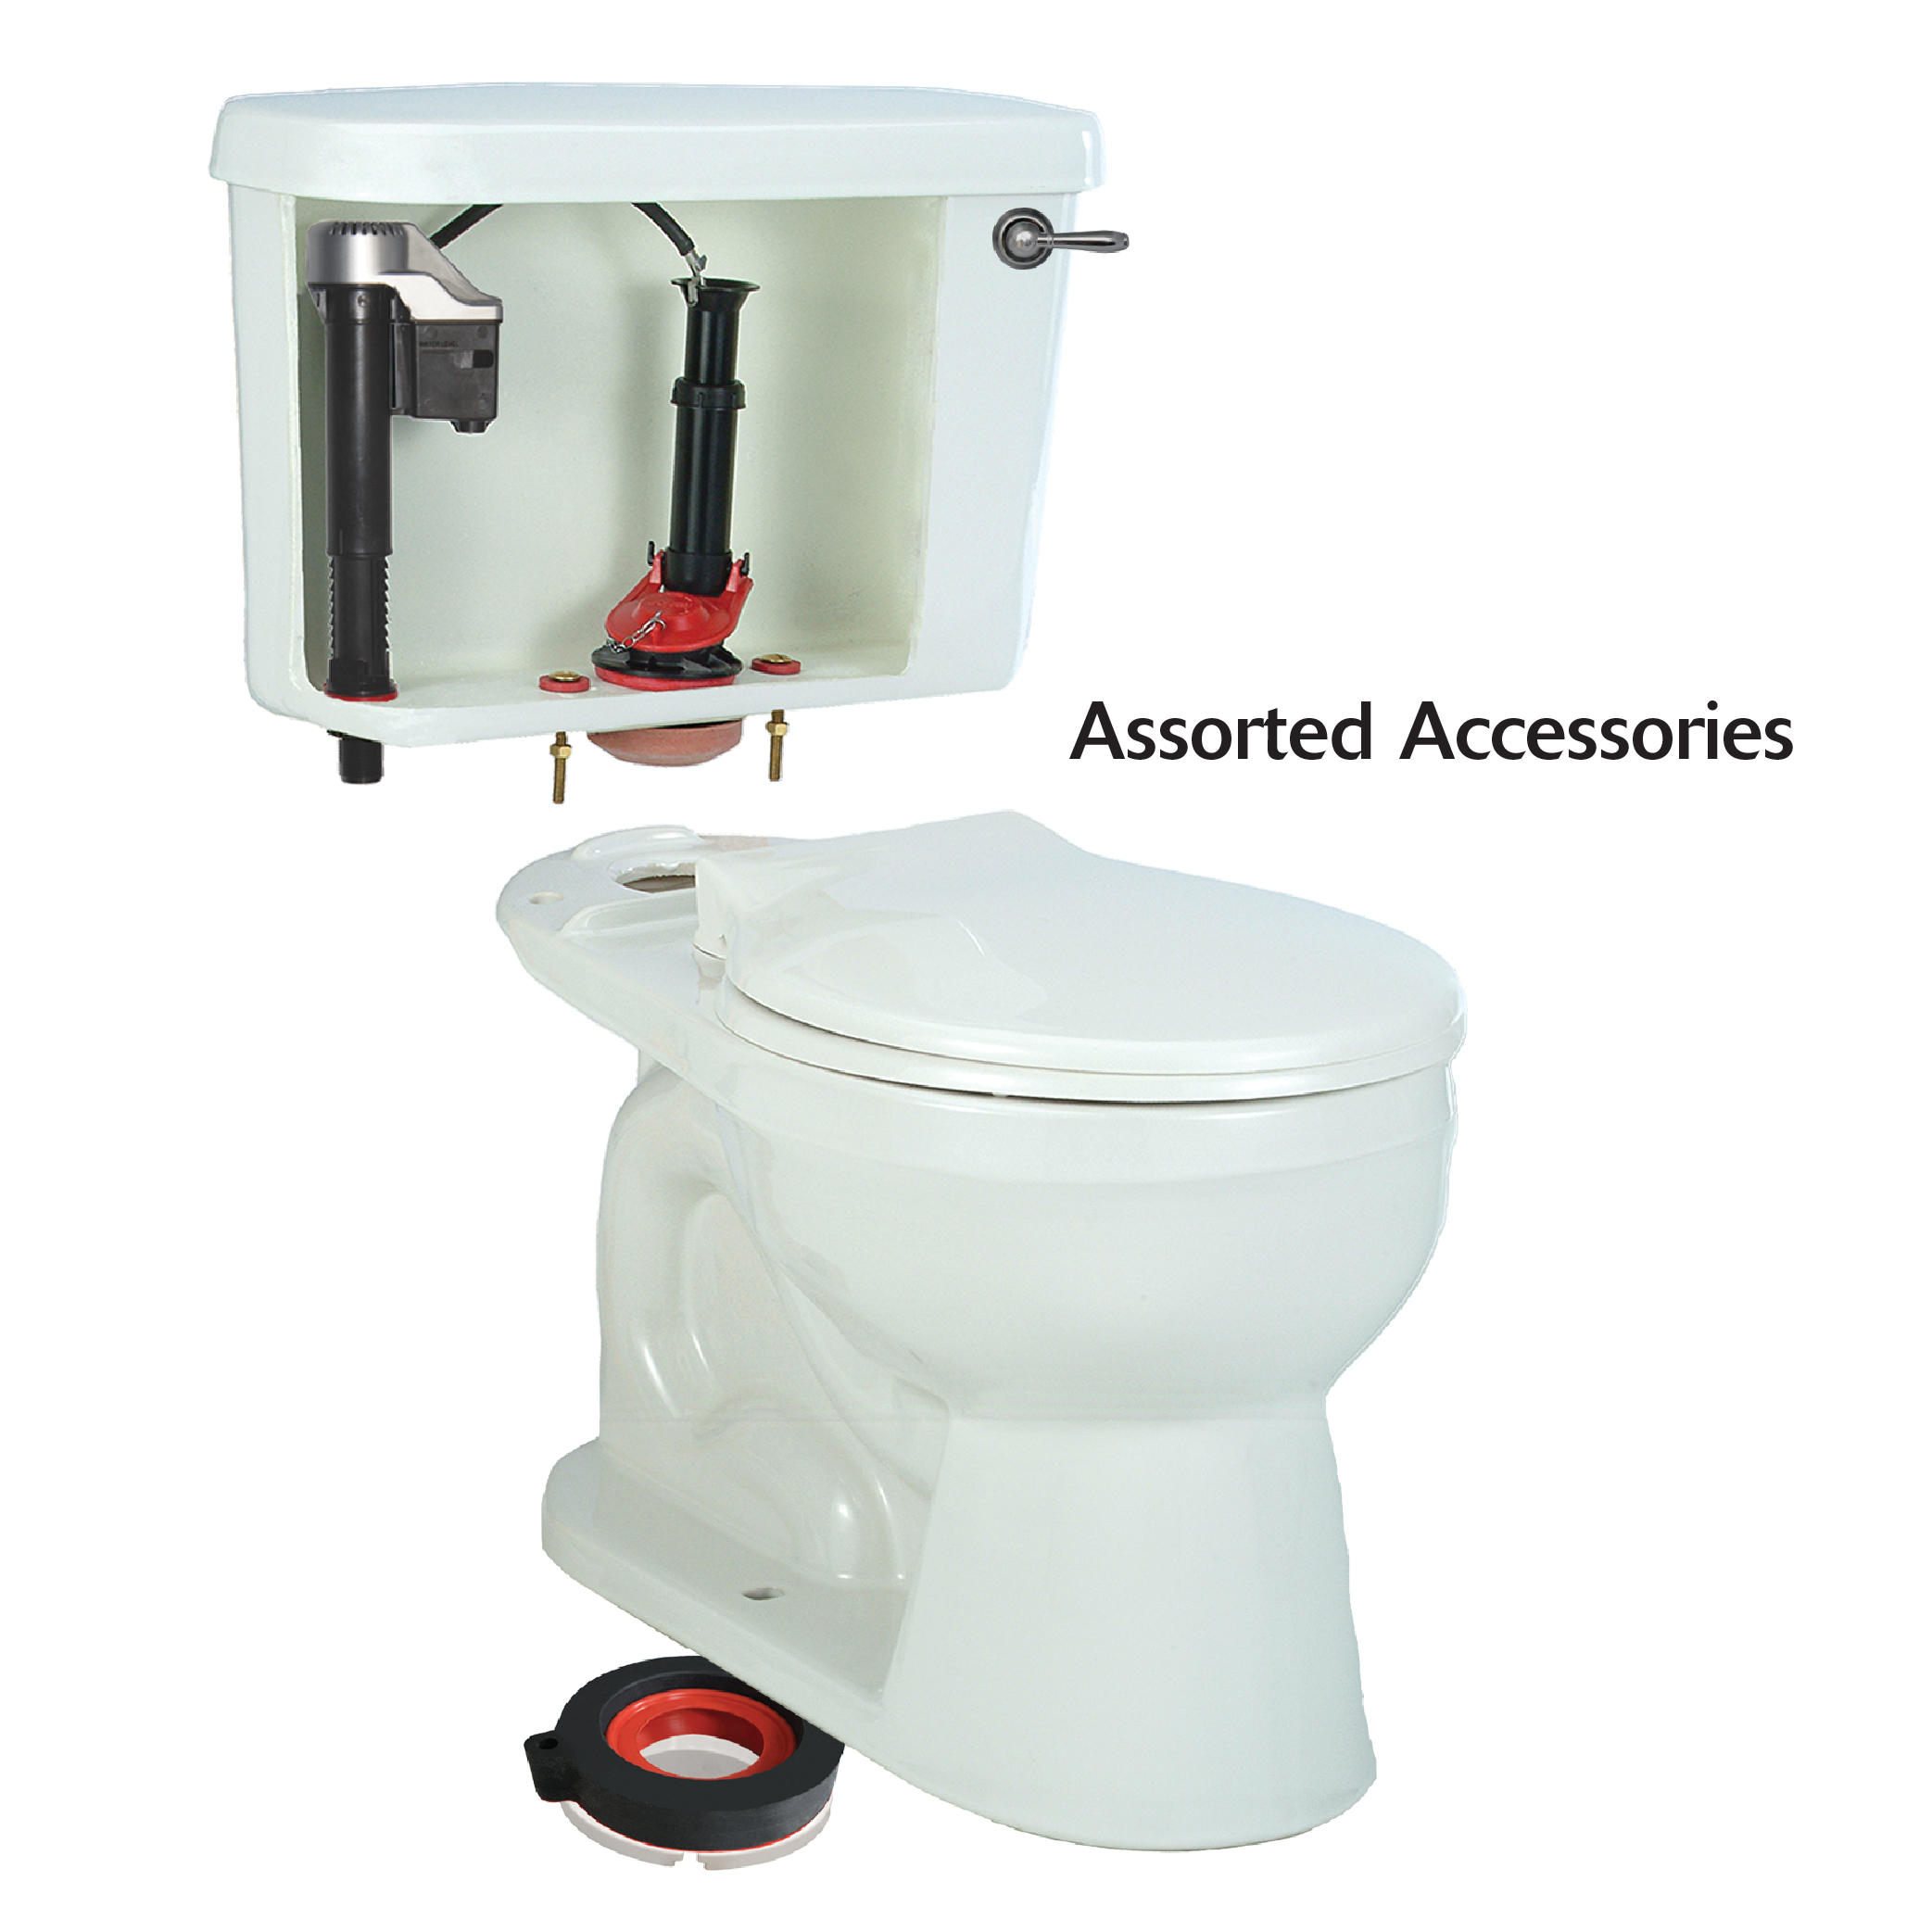 Toilet Accessories Toilet Tank Accessories Korky Toilet Repair